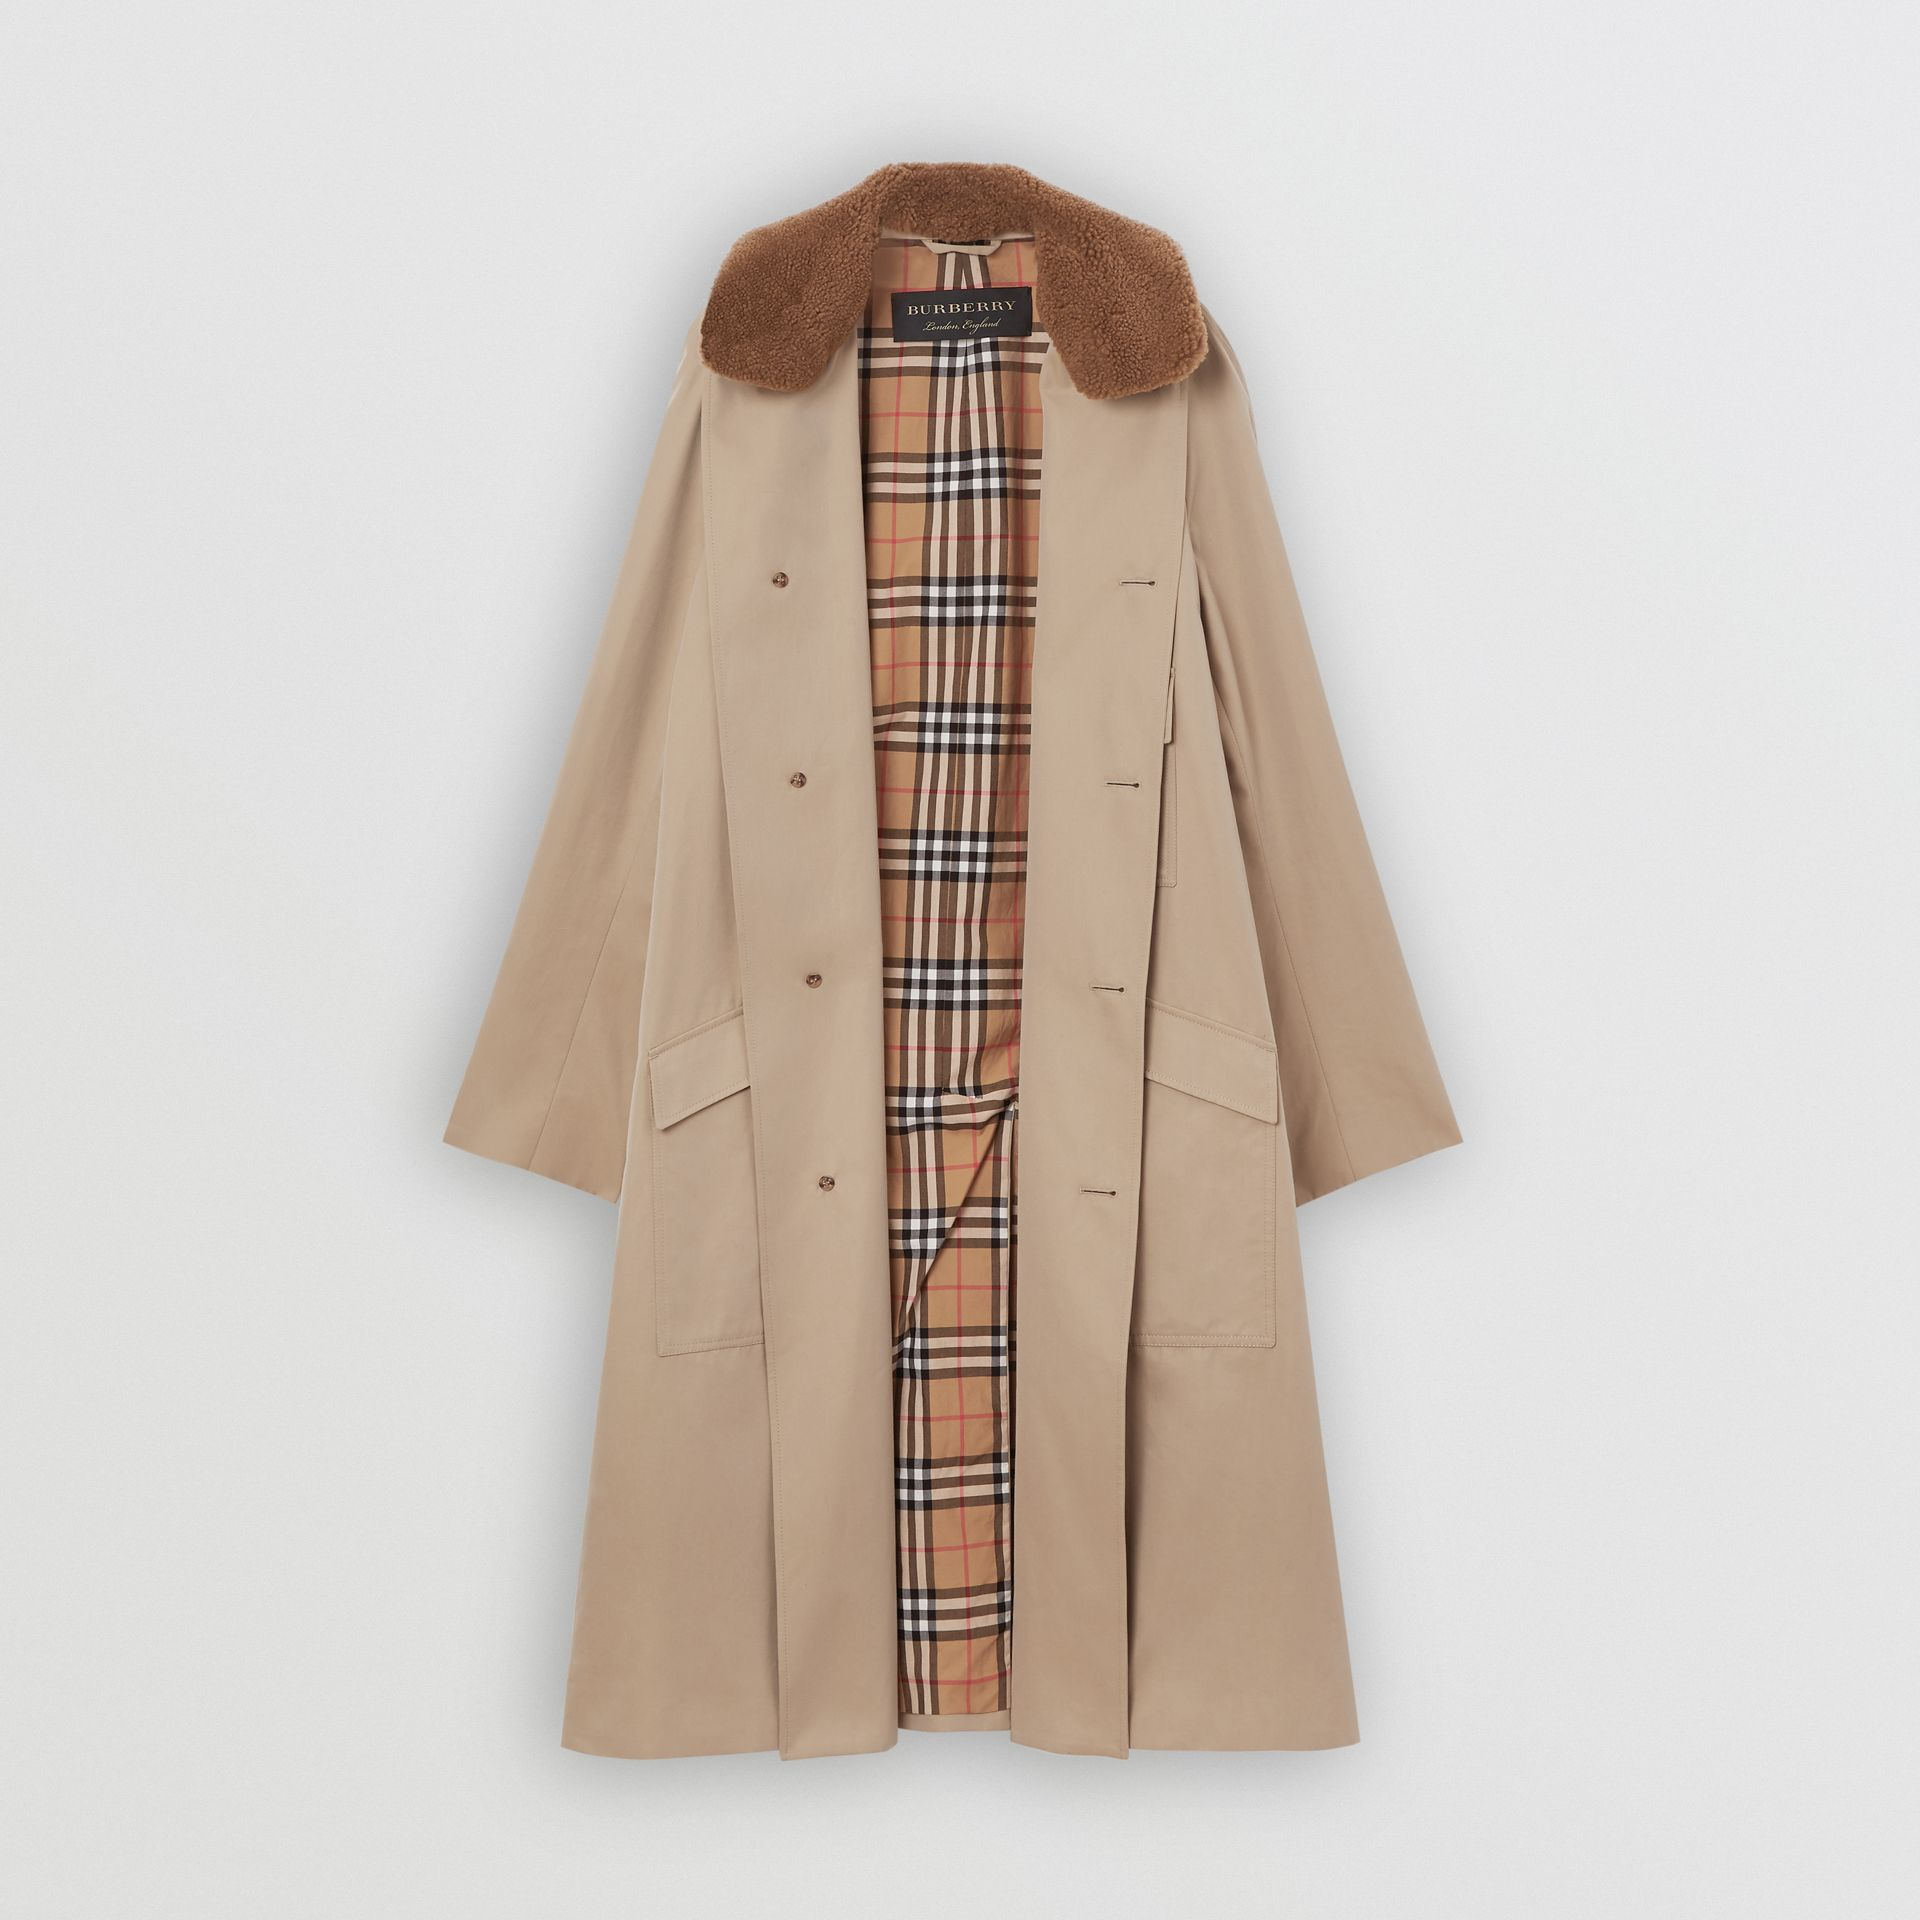 Paletot en coton avec col en shearling amovible (Miel) | Burberry - photo de la galerie 7